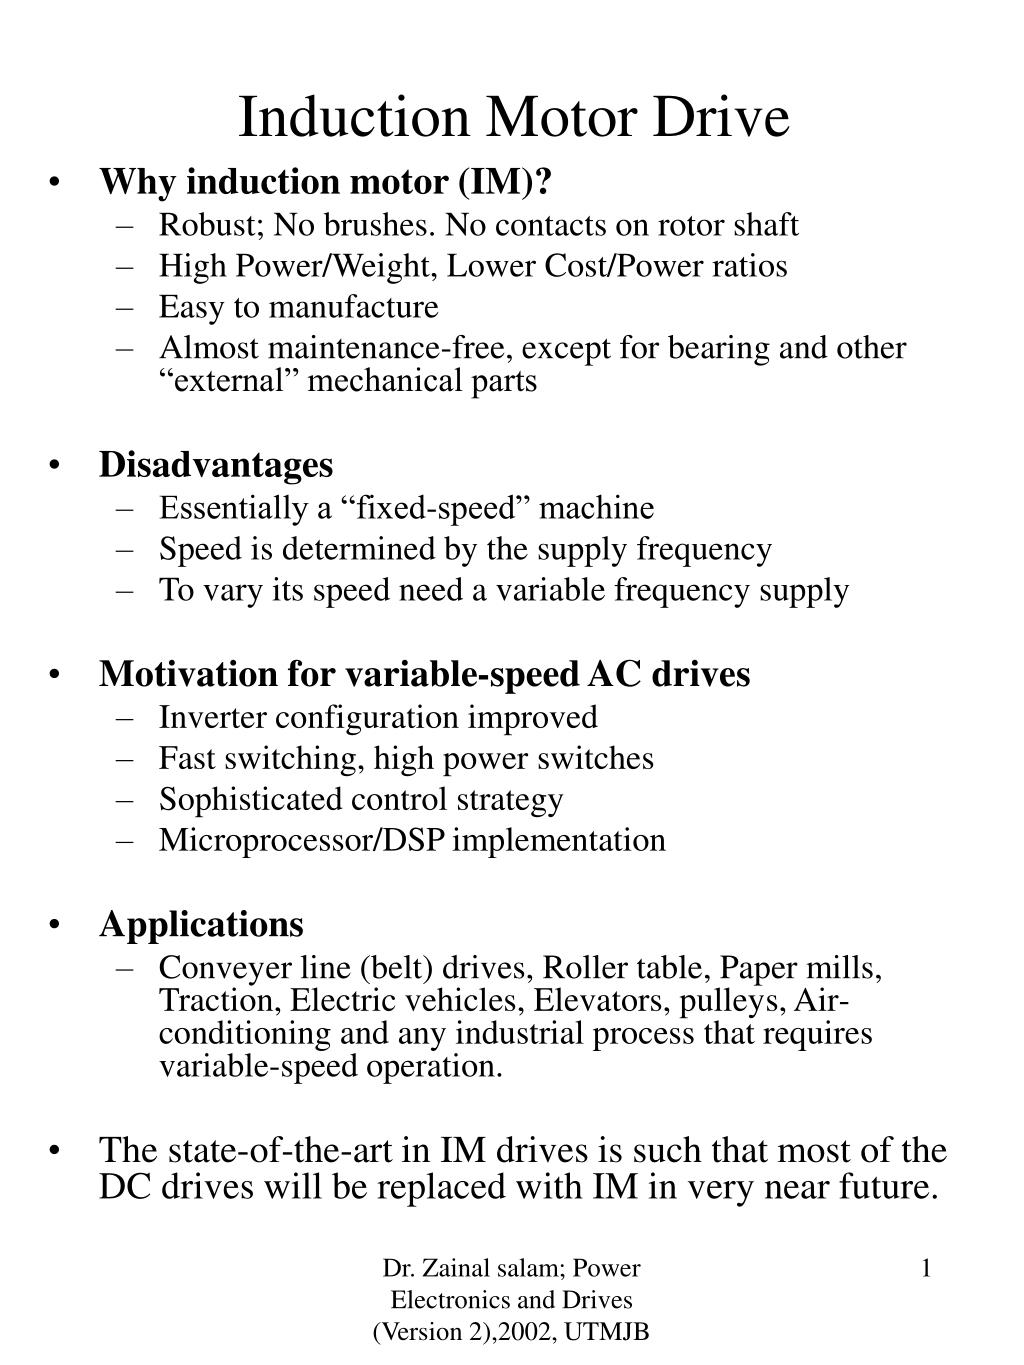 Ppt Induction Motor Drive Powerpoint Presentation Free Download Id 240937